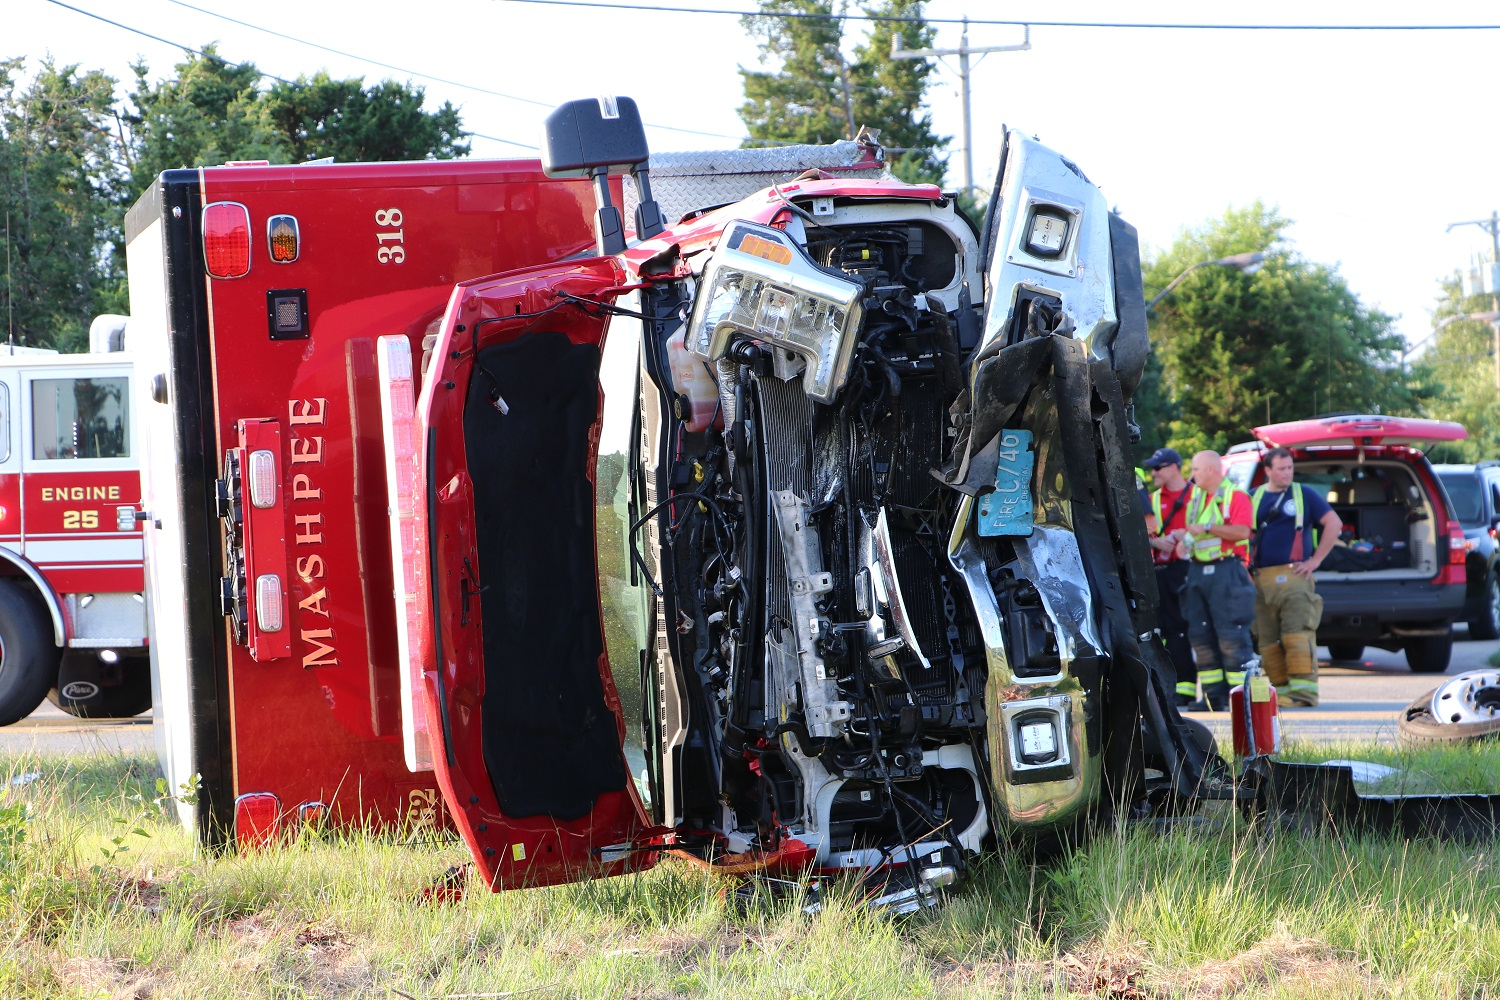 SHOCKING CRASH VIDEO: Ambulance rolls over with patient